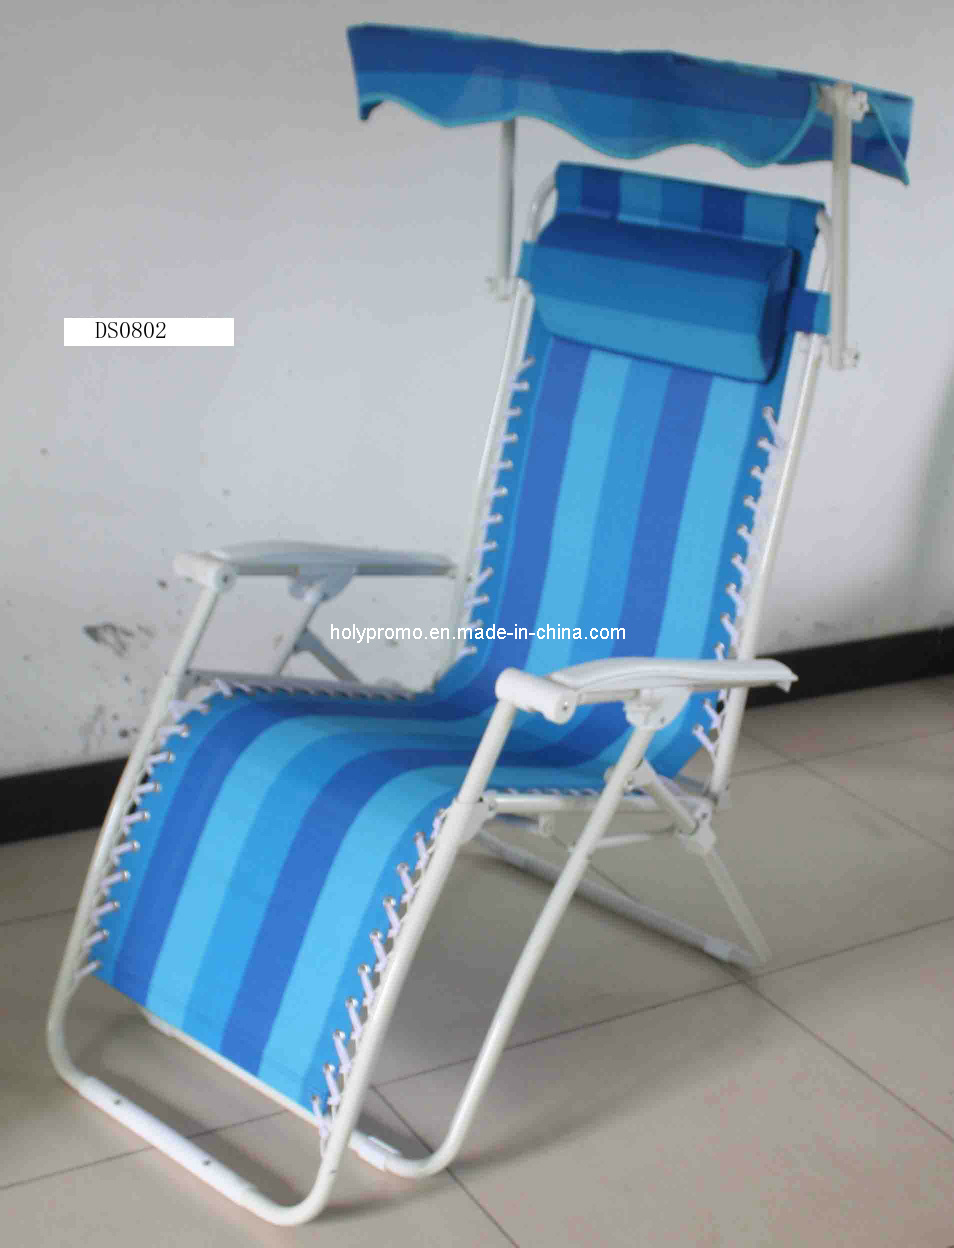 Playa chair con sun shade ds0802 playa chair con sun for Sillas para la playa